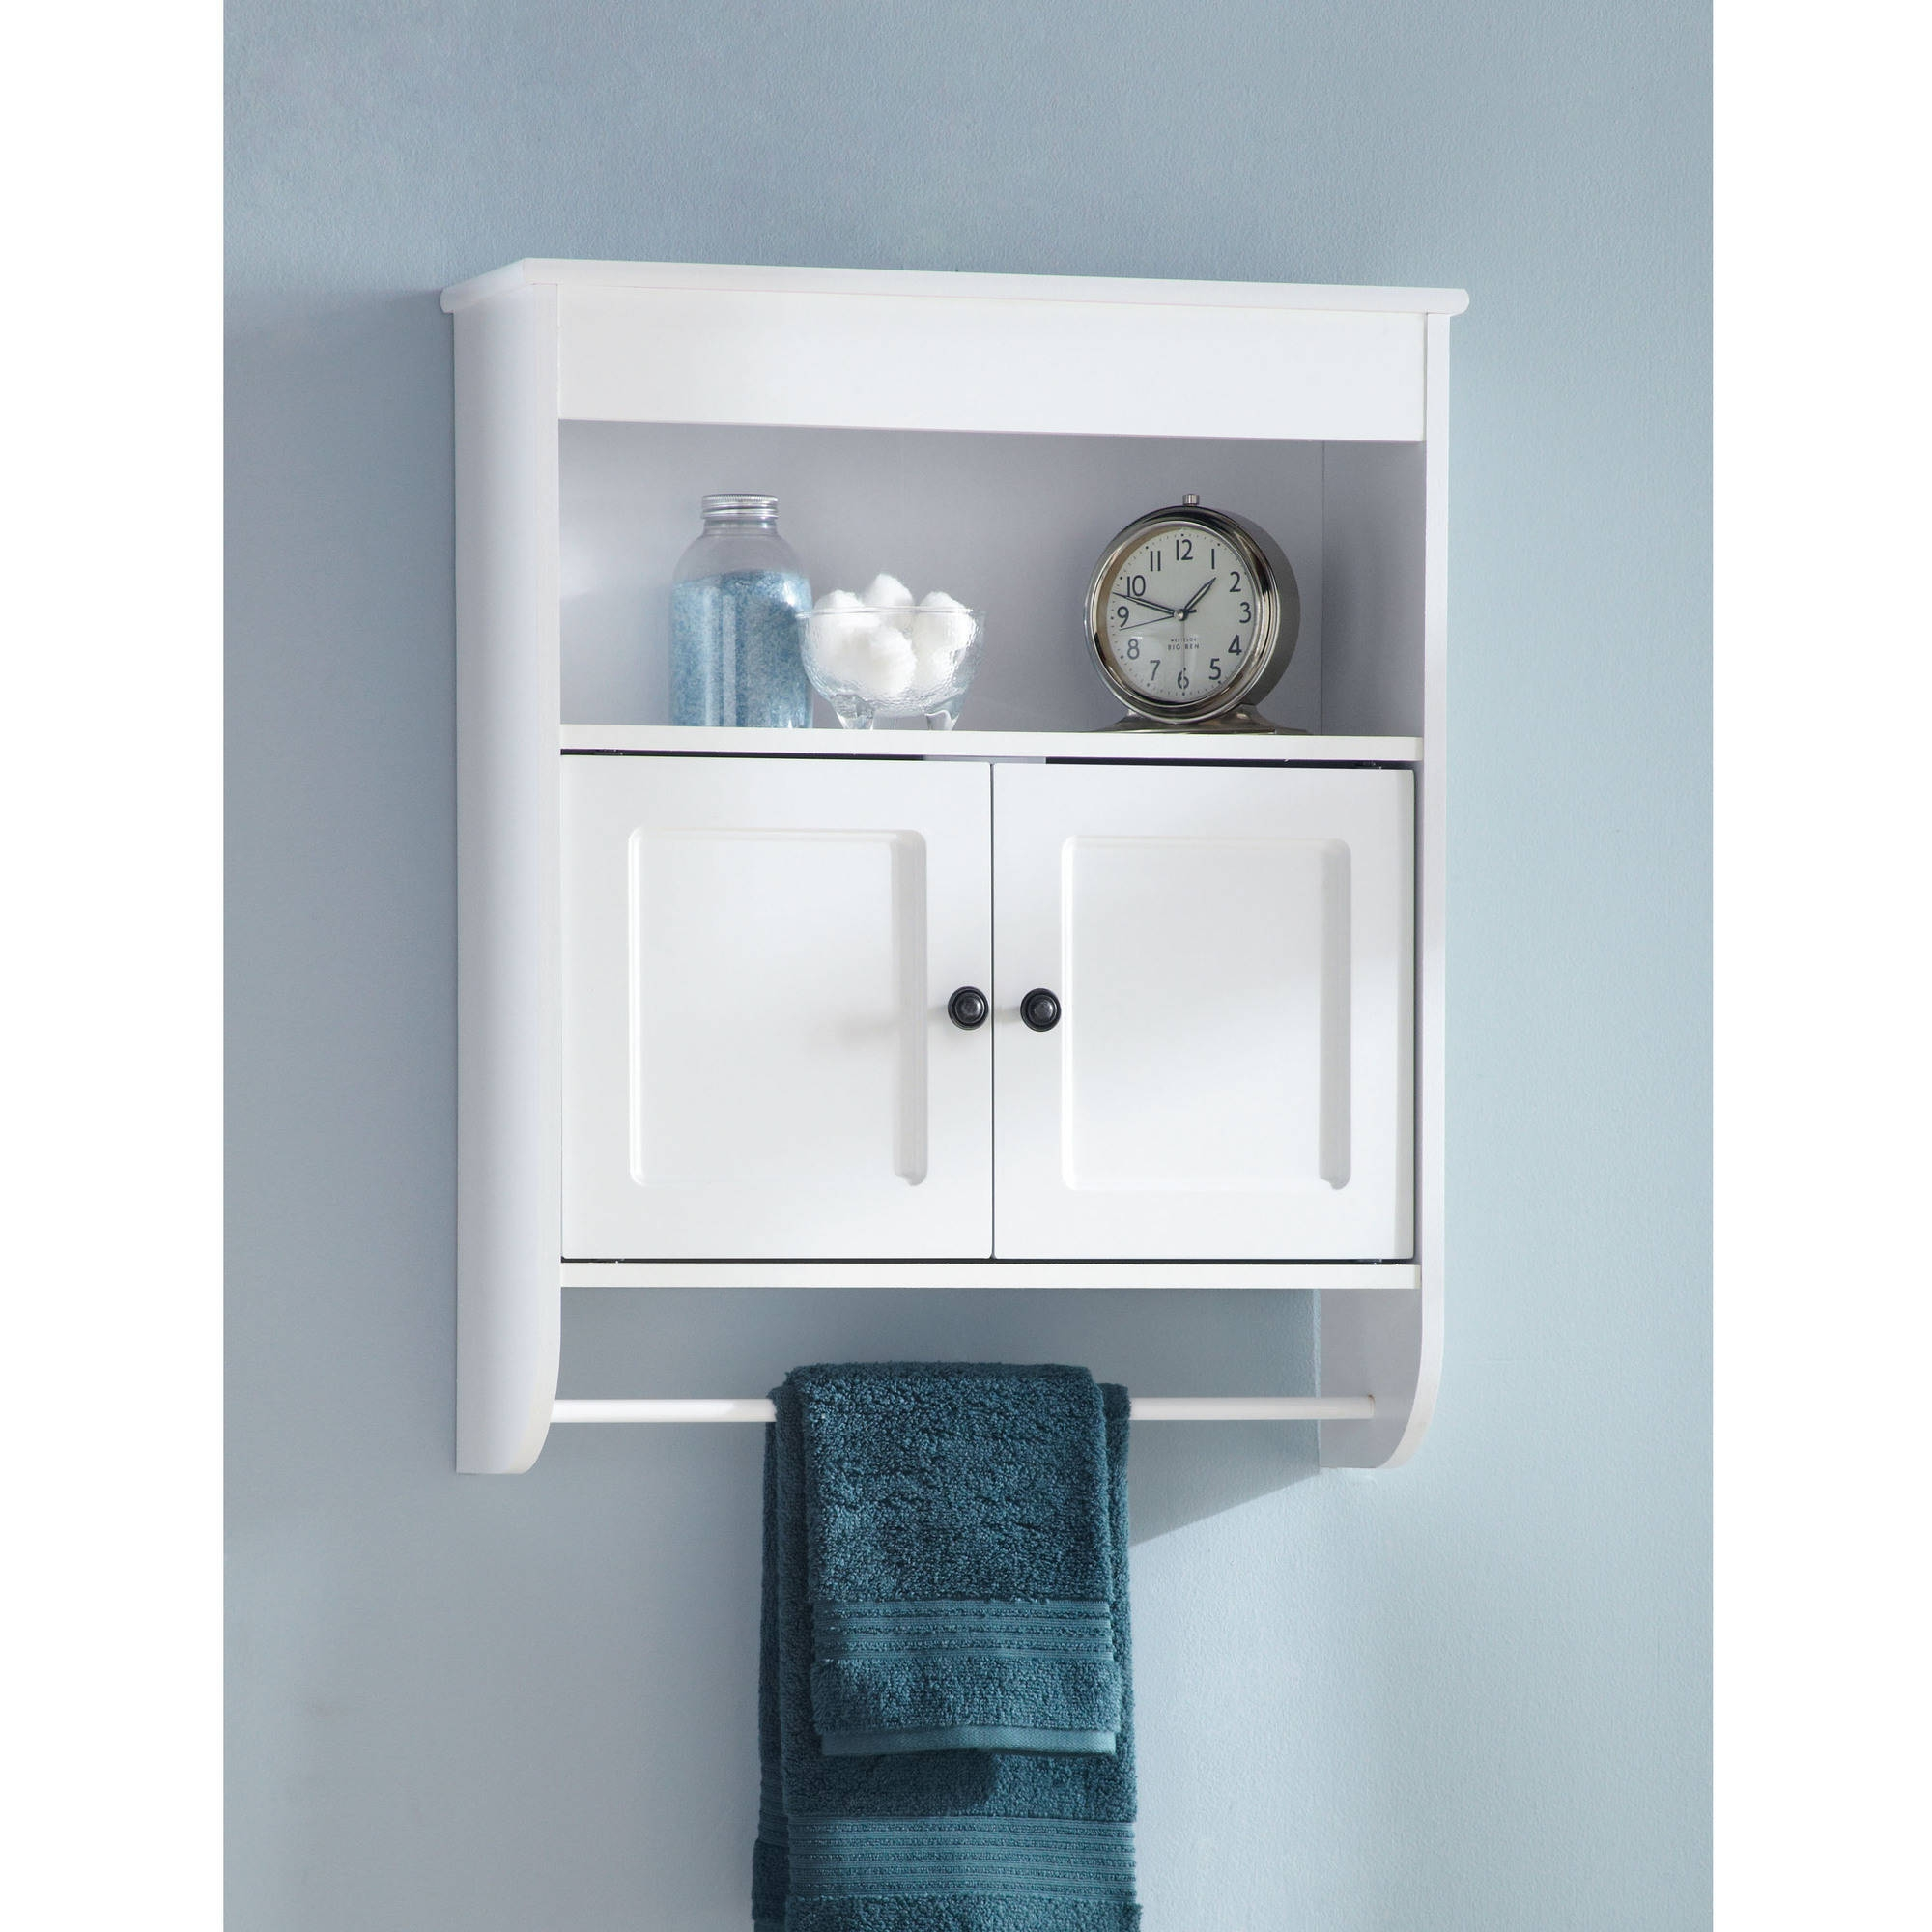 Bathroom Wall Cabinets At Lowessimple white bathroombinets for modern ideas wall formidable